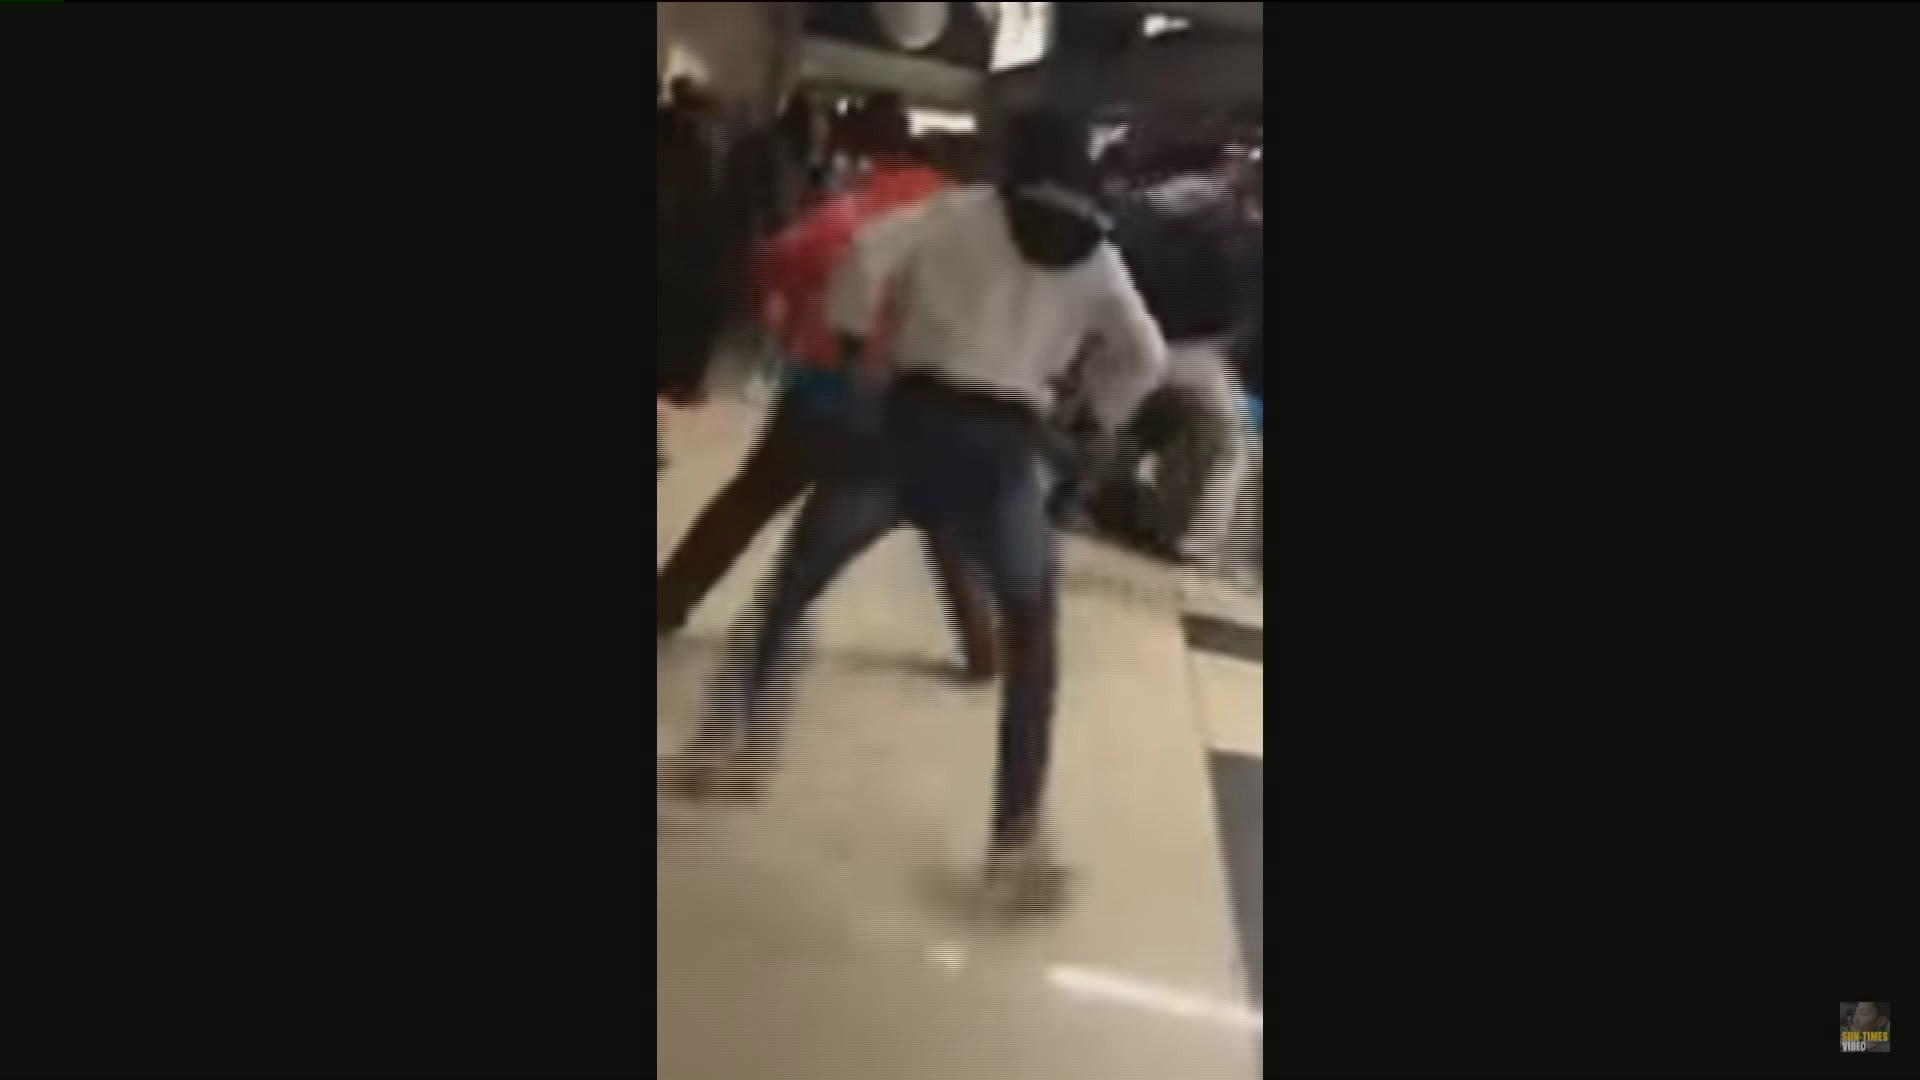 Video Captures Brawl During McDonald's All American Game in Chicago